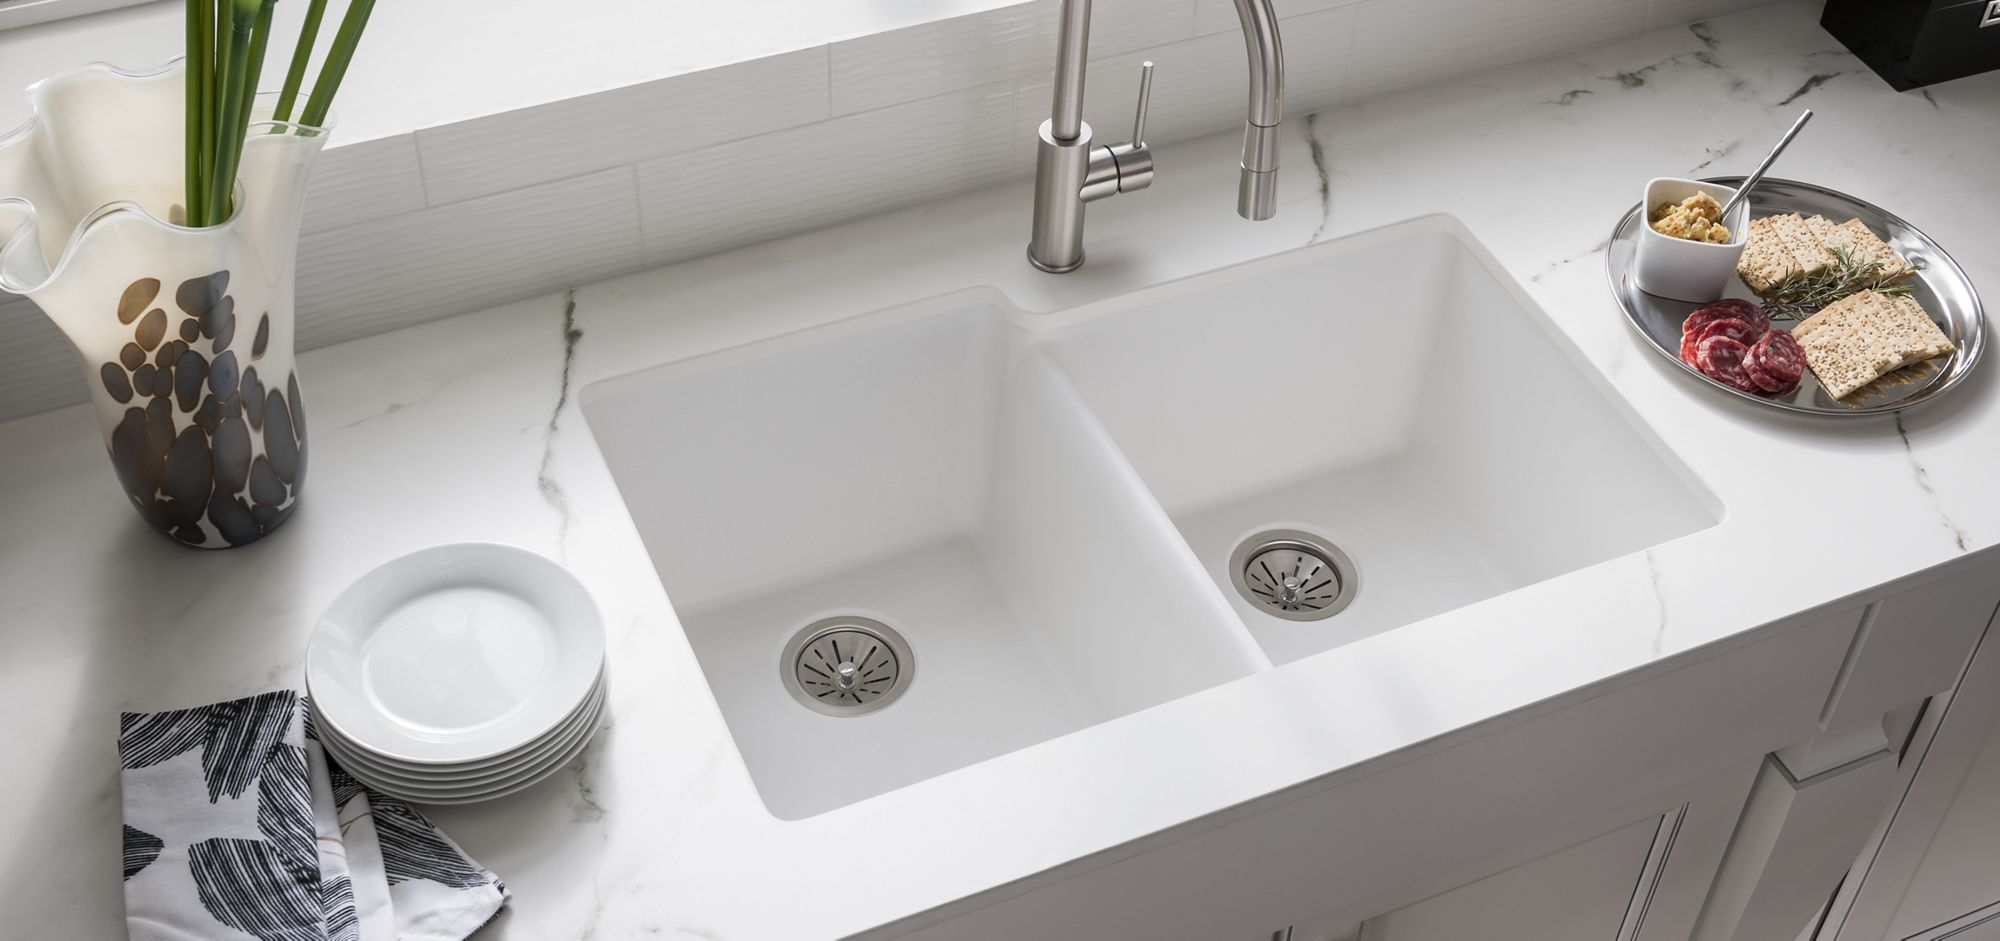 Best Kitchen Sink Trends – Loretta J. Willis, DESIGNER